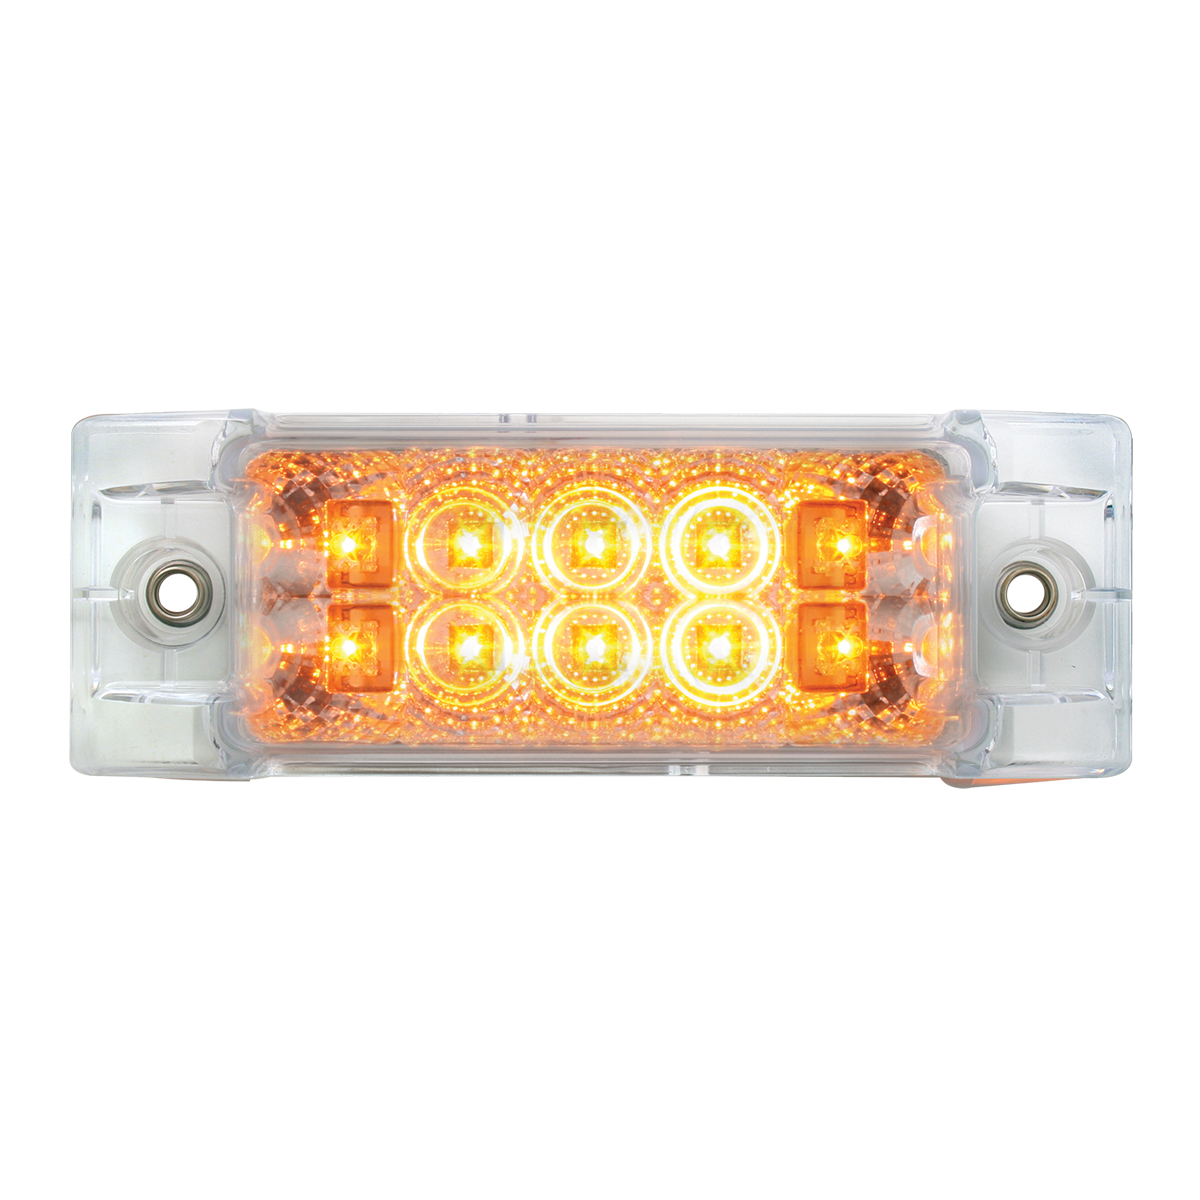 76211 Rectangular Wide Angle Spyder LED Marker Light in Amber/Clear